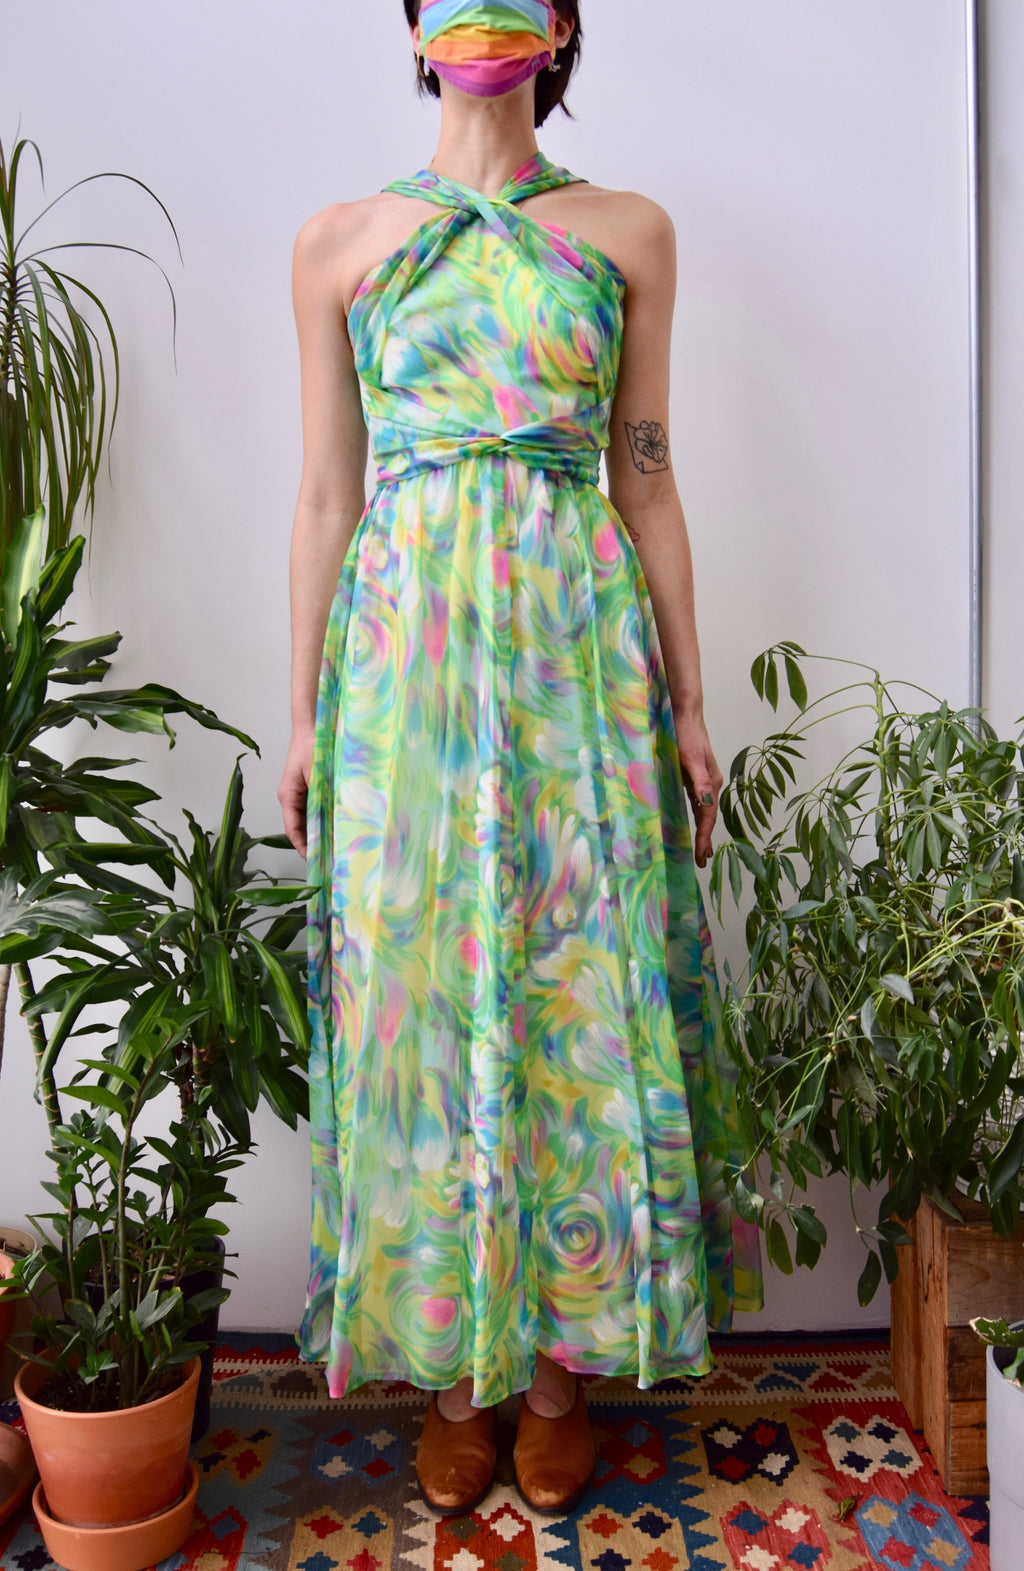 Seventies Swirled Chiffon Dress